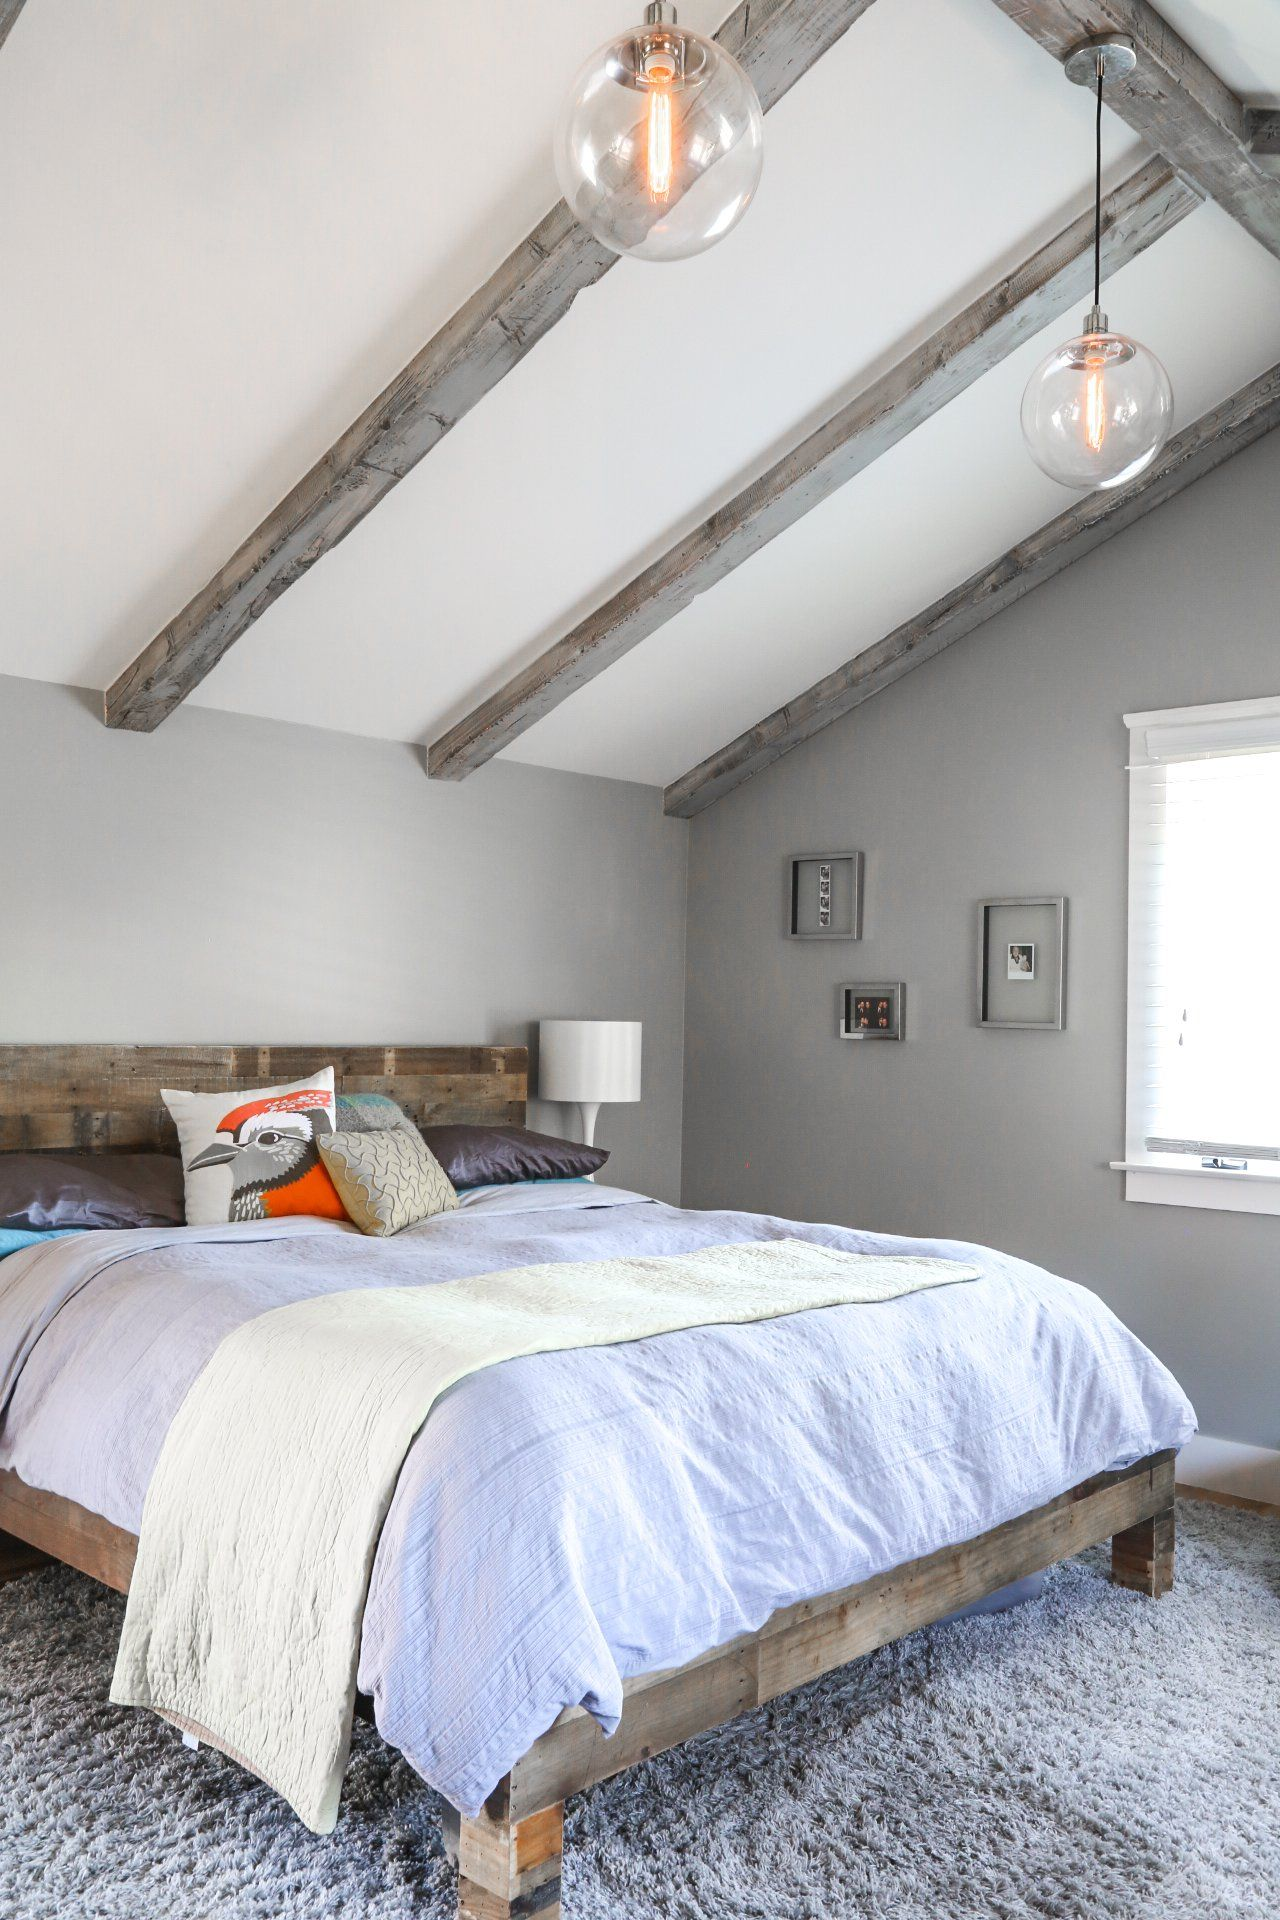 Sophisticated Paint Colors That Match This Apartment Rapy Sw Sw Smoky Sw Sw Hyacinth Sw Chill Paint Colors That Match This Apartment Rapy Sw Jeff Lewis Paint Color Jeff Lewis Paint Fan Deck houzz-03 Jeff Lewis Paint